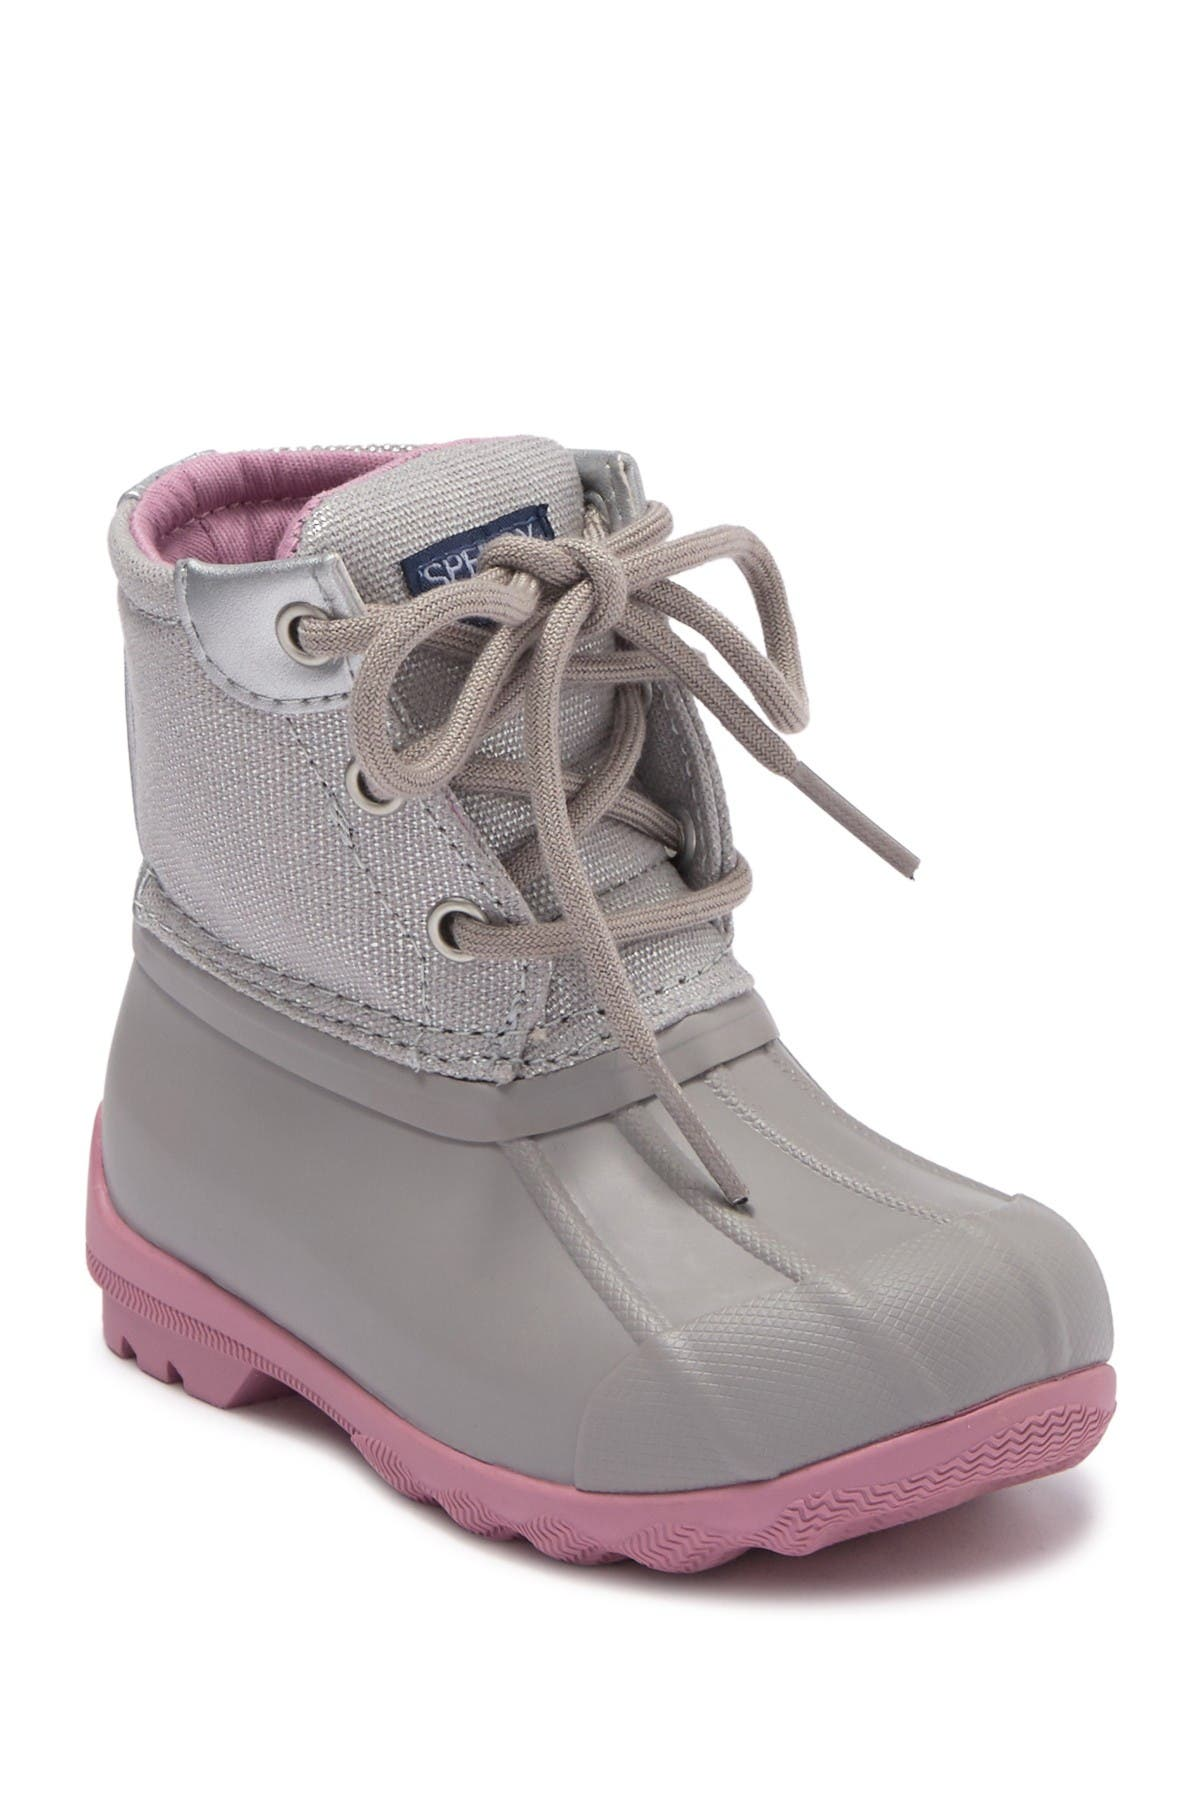 Image of Sperry Port Duck Boot